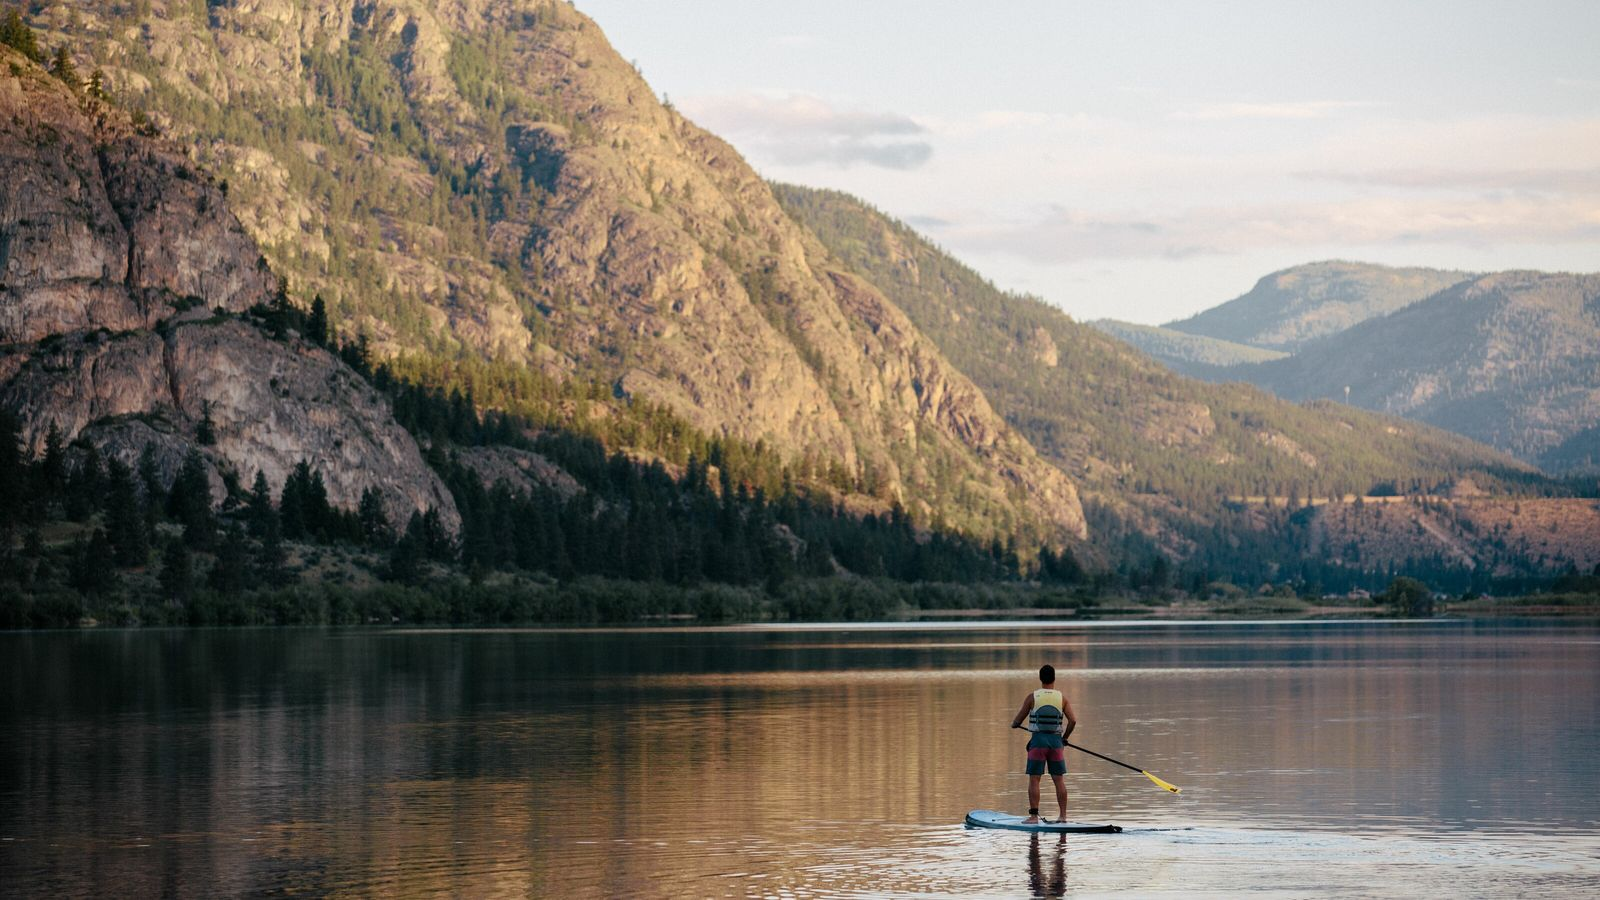 Okanagan Valley is home to mountain lookouts, biking trails, watersports and a lively local food scene ...